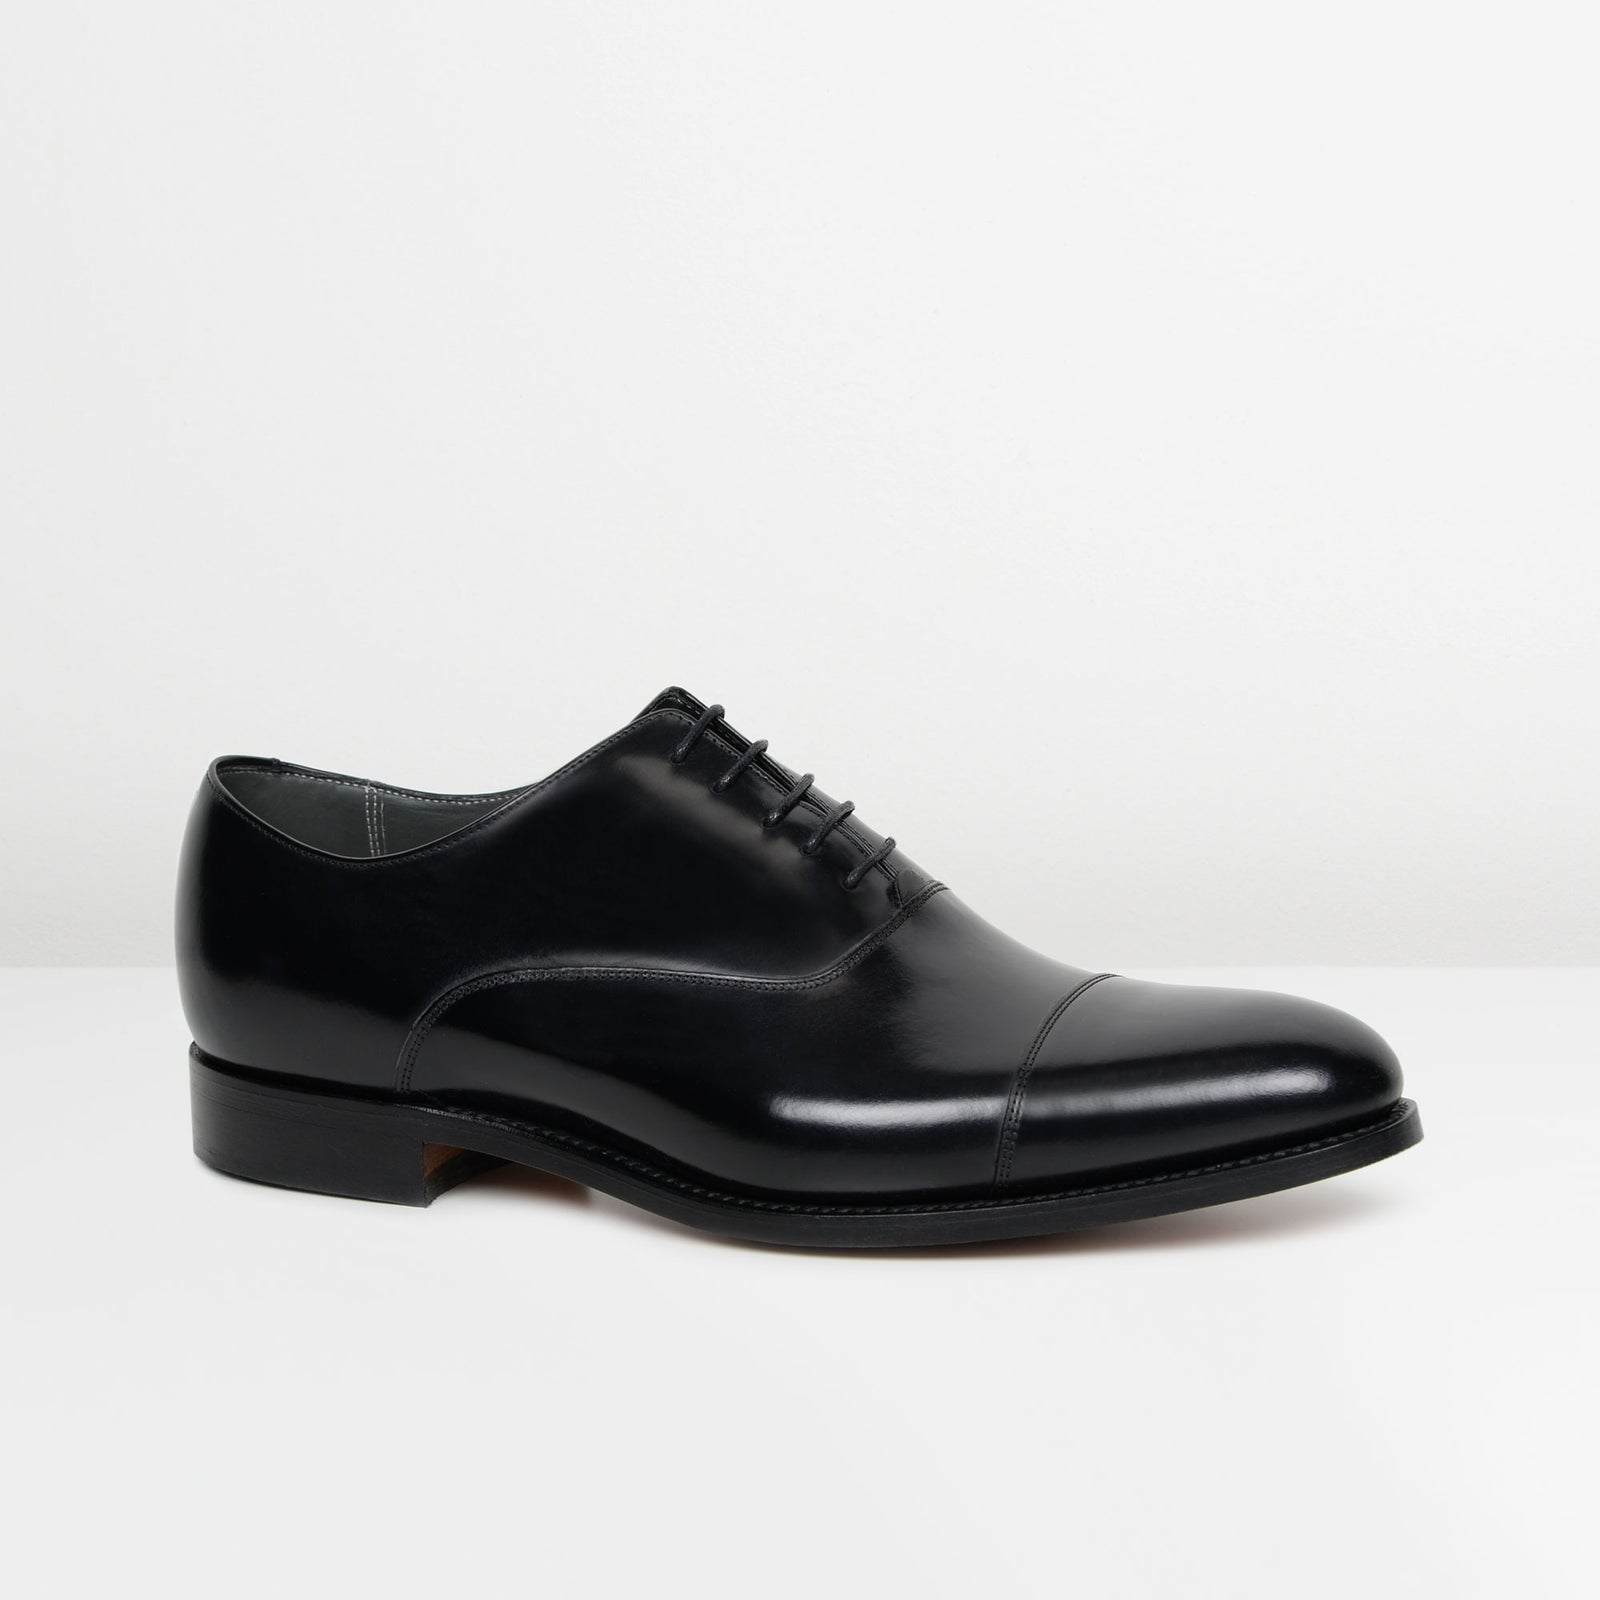 Black Winsford Barker Oxford Shoes from